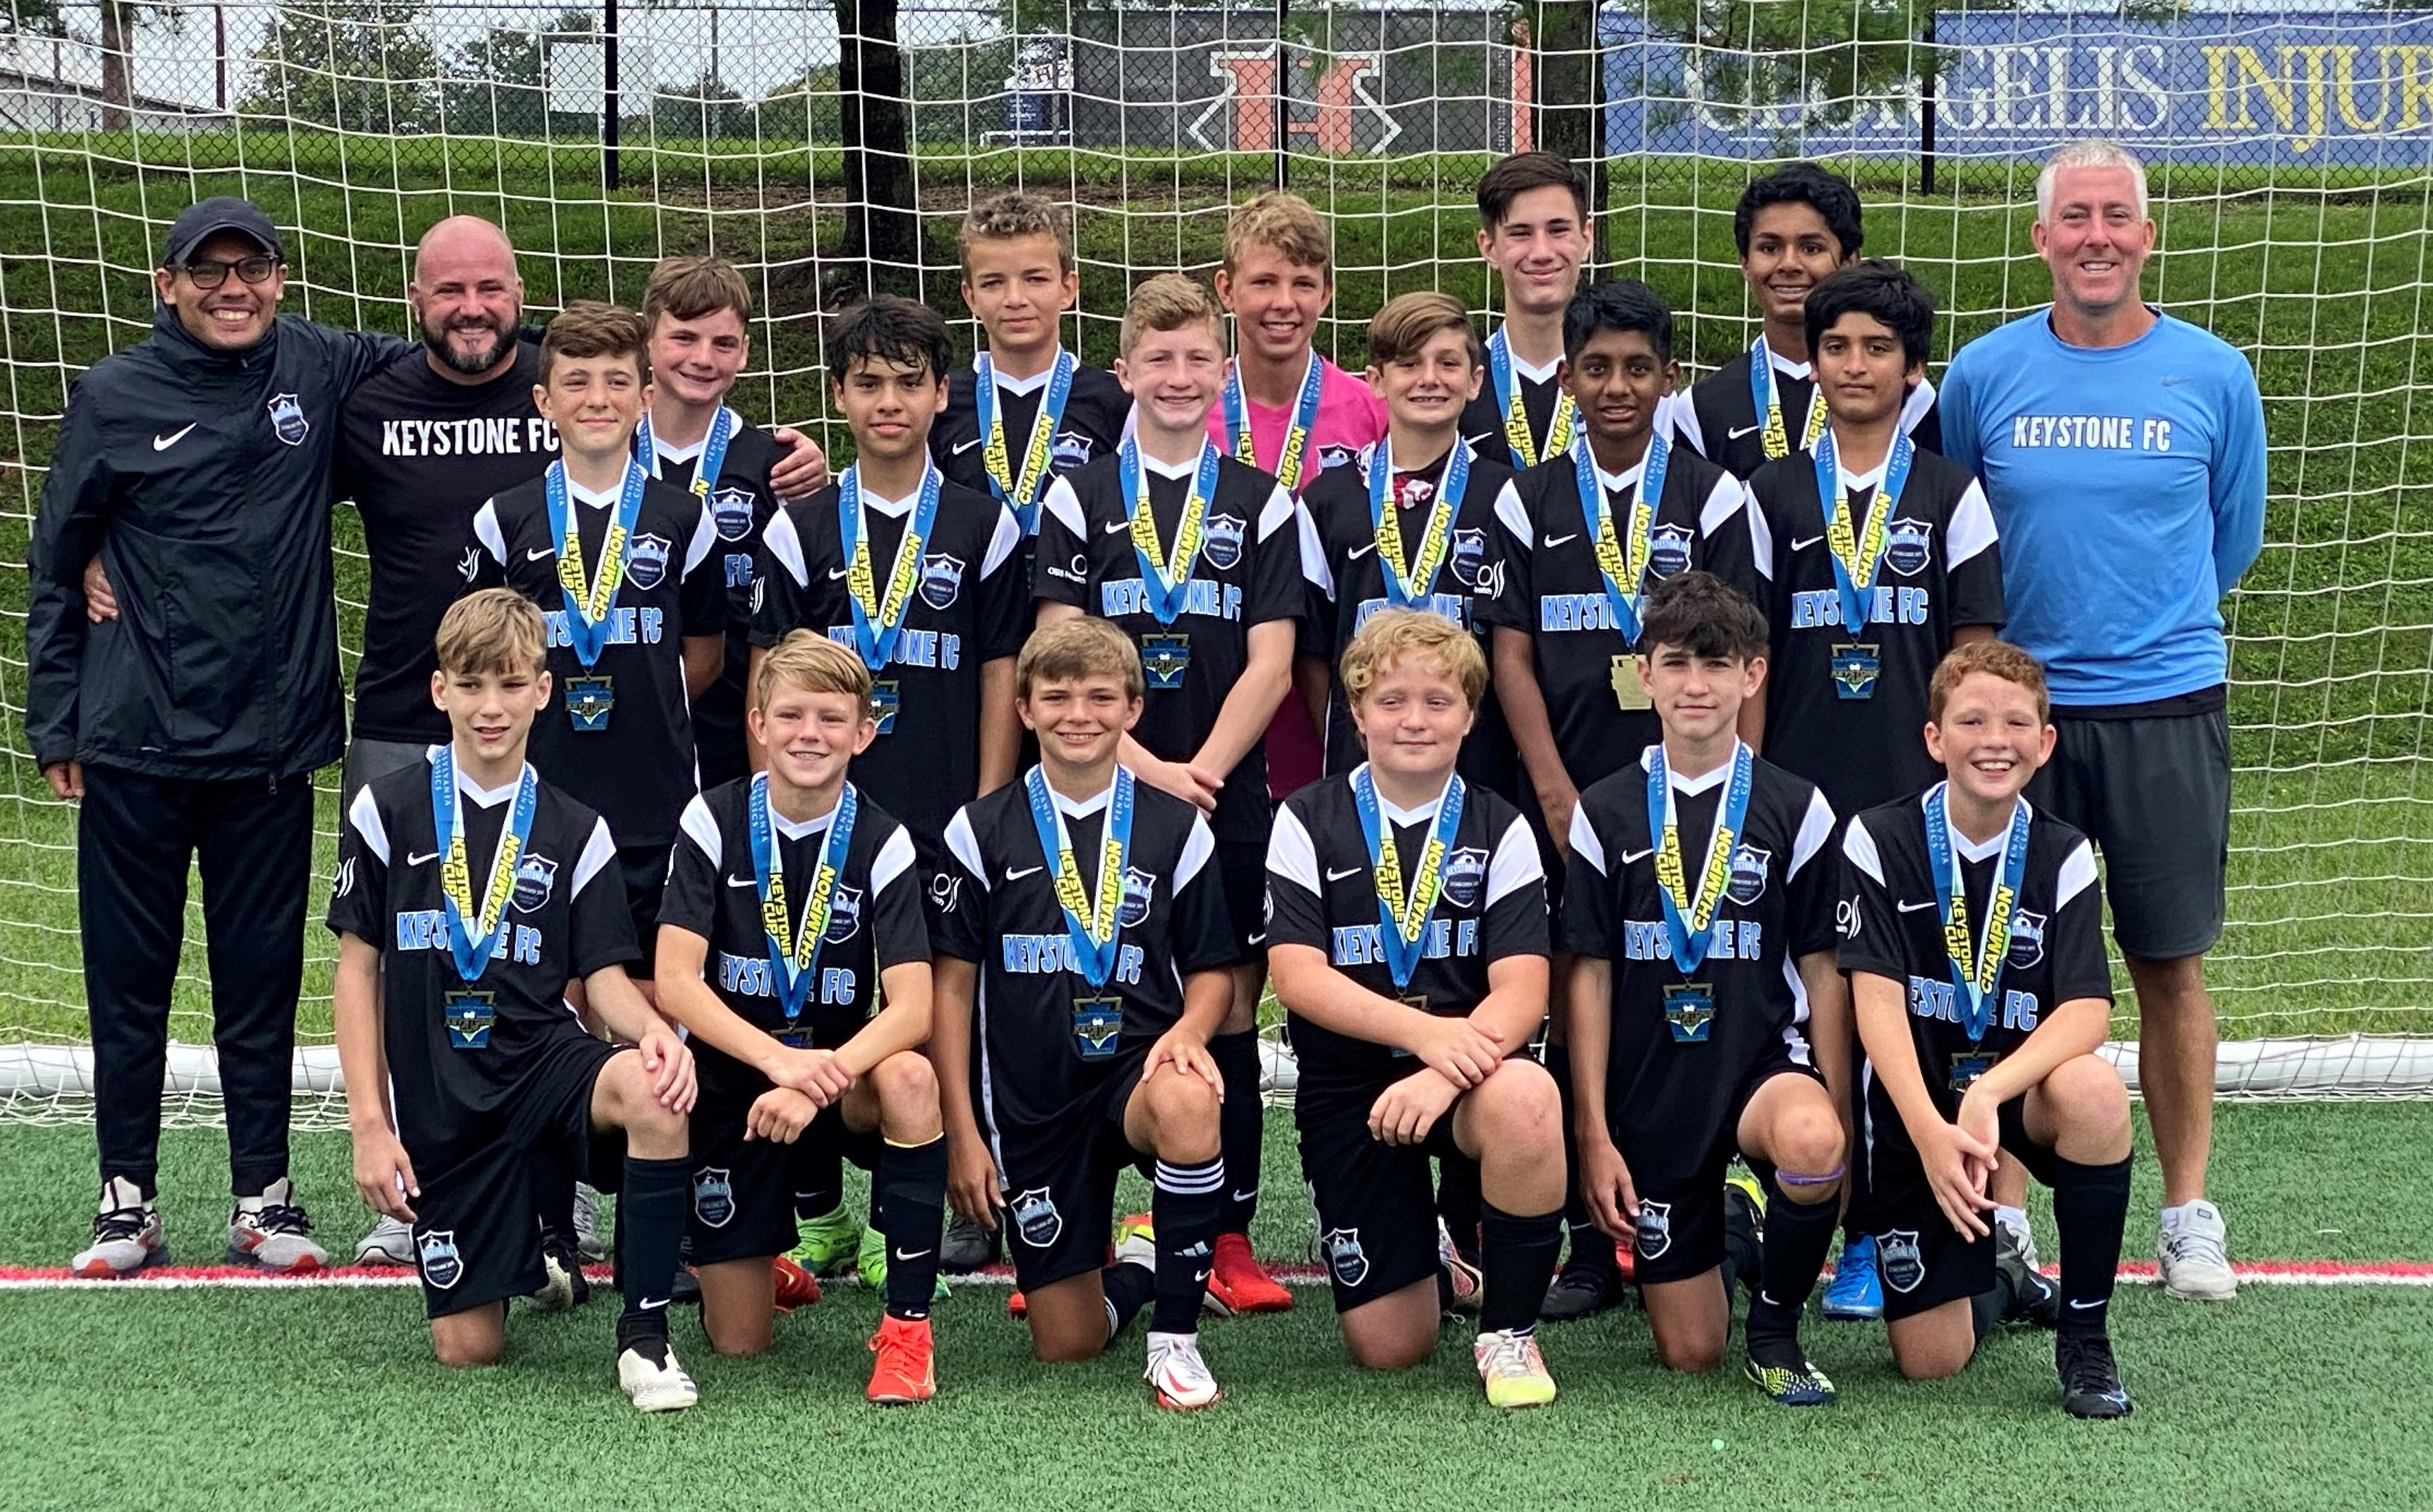 Elite 08B Claims Top Spot at Keystone Cup